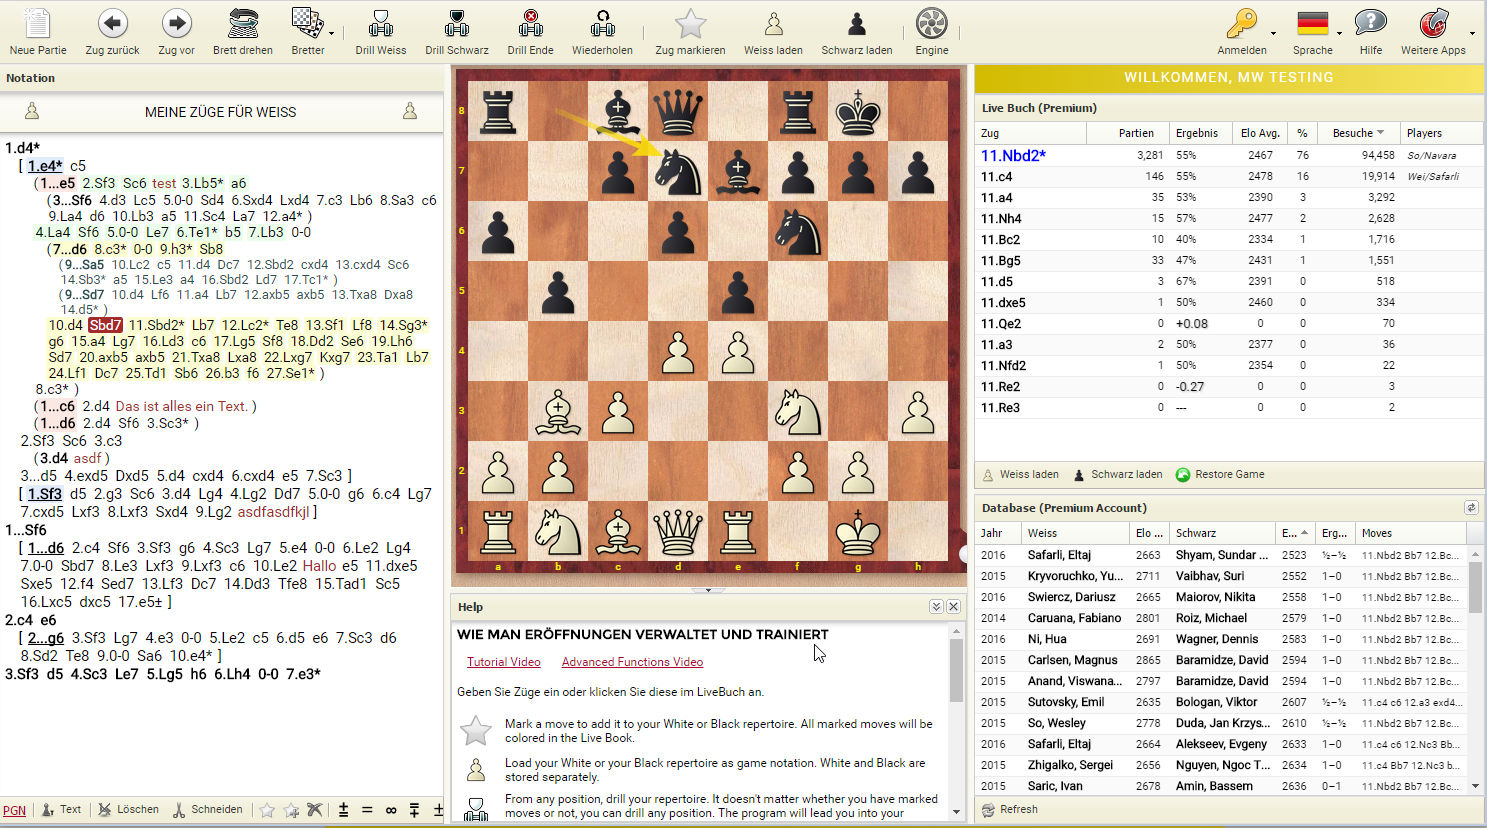 openings.chessbase.com Screenshot